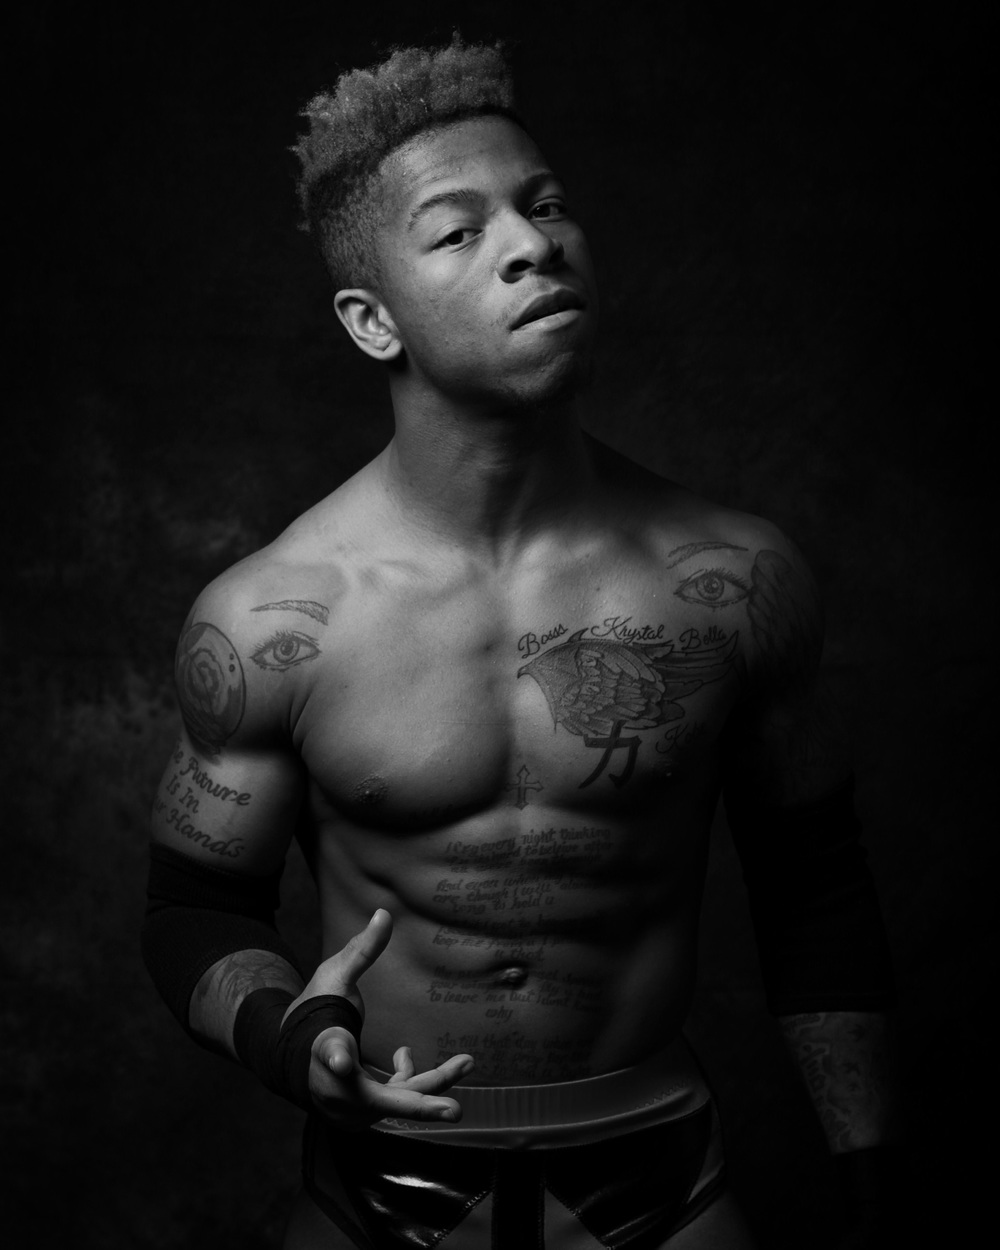 Follow Lio Rush on Instagram @Rushliorush